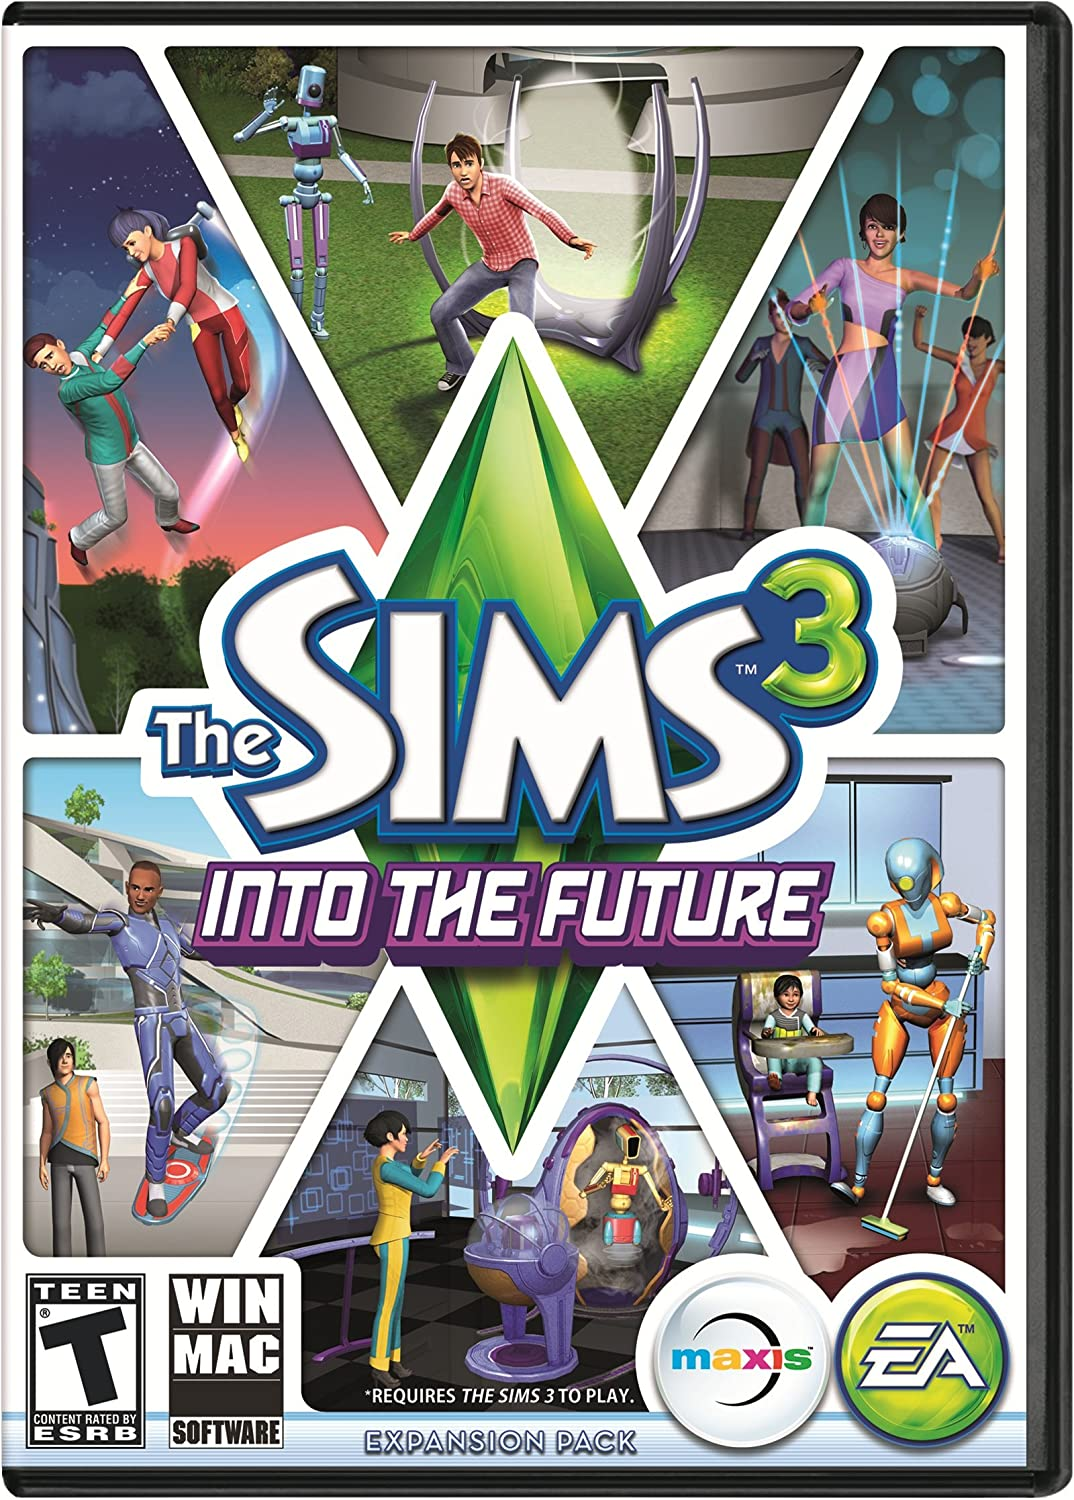 How to install the sims 3 starter pack on pc - How To Install The Sims 3 Starter Pack On Pc 45